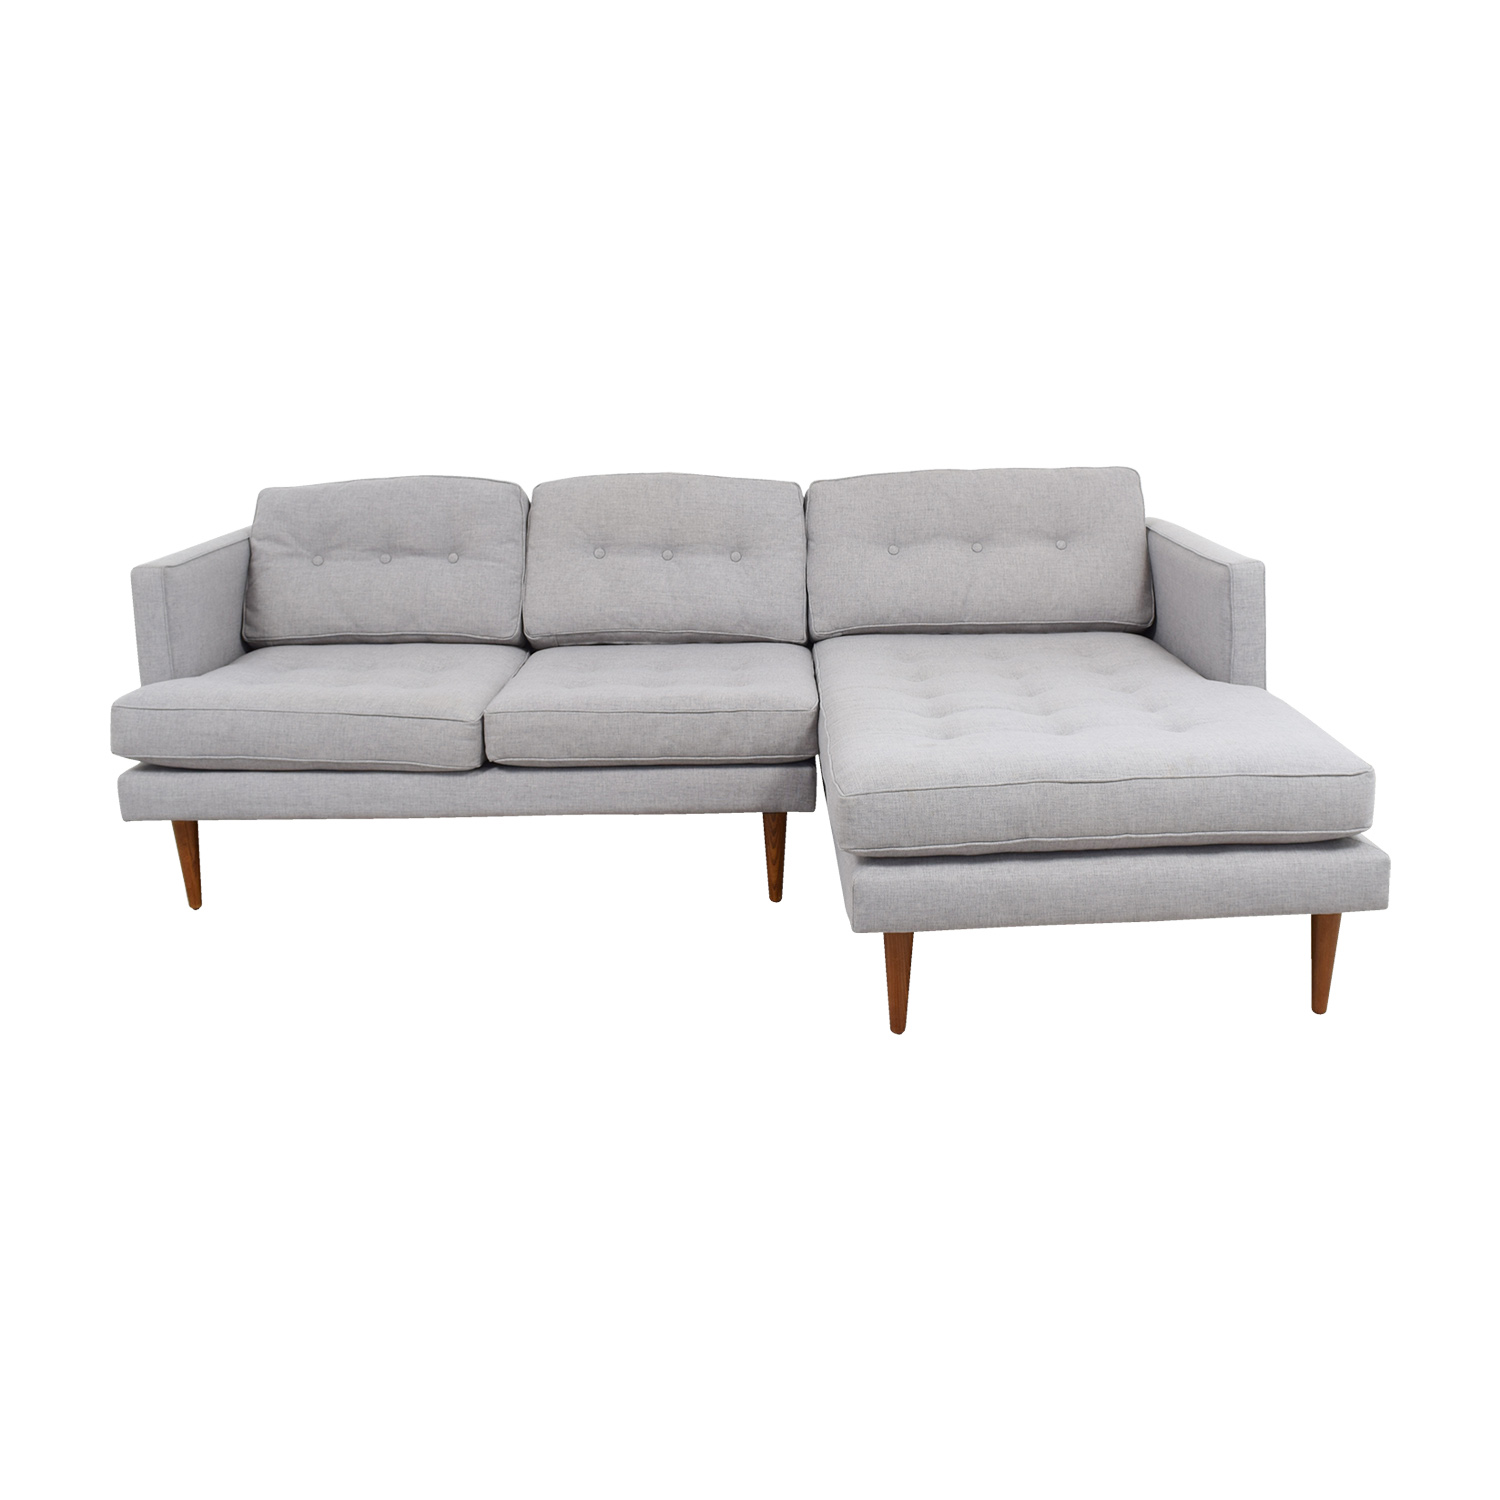 72 off west elm west elm grey tufted chaise sectional sofas